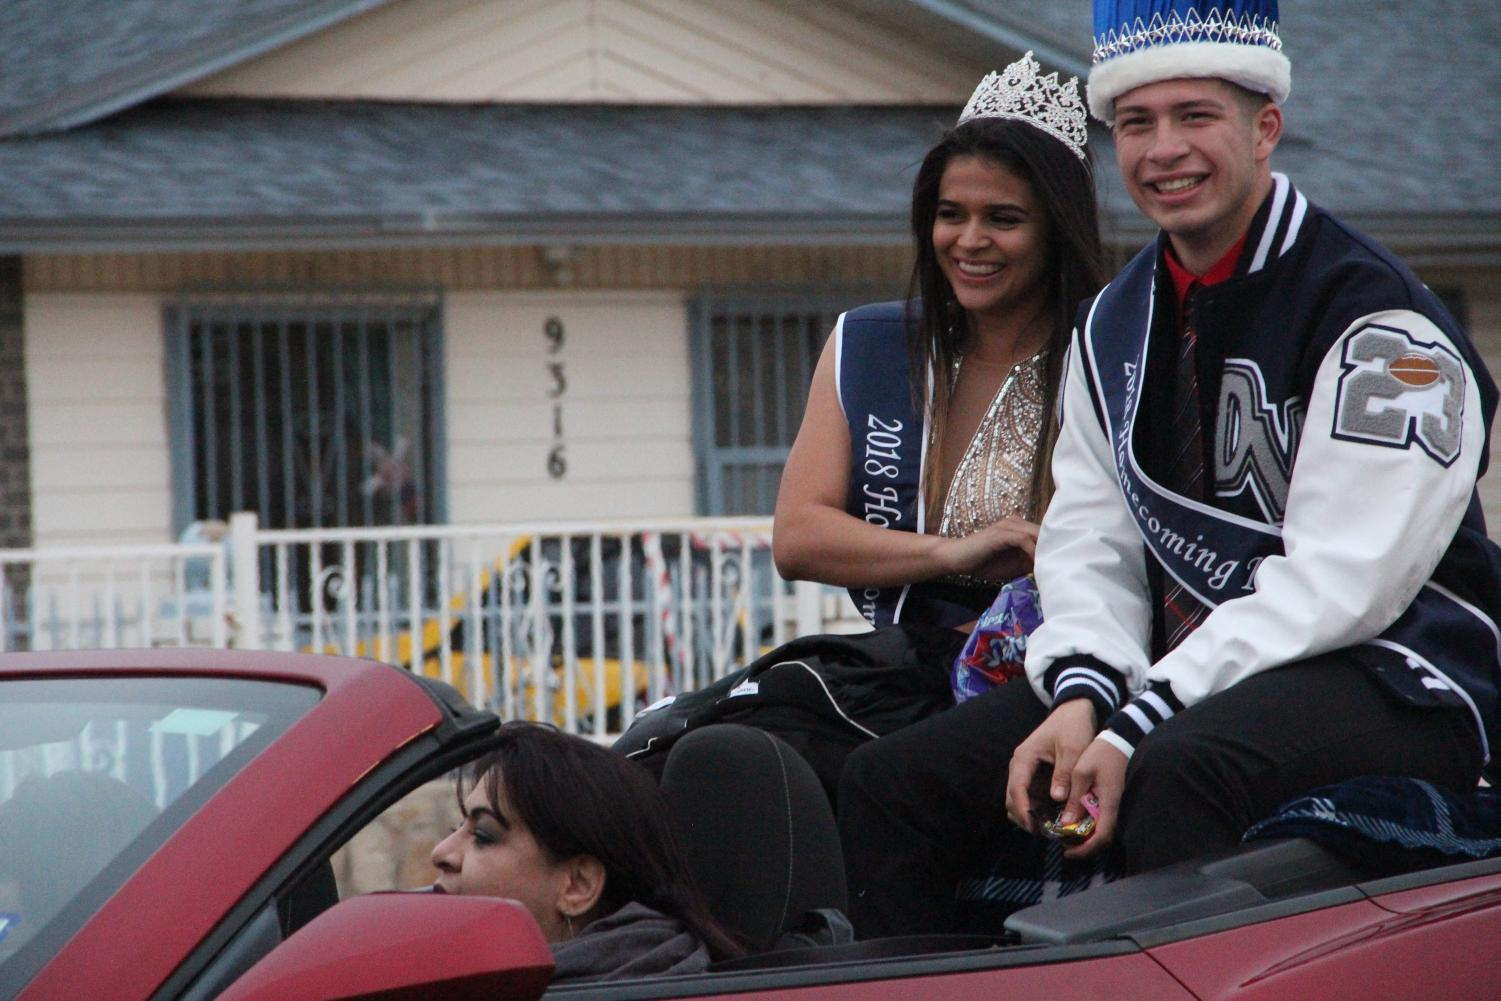 Homecoming queen Love and king Roman wave to the crowd at the homecoming parade.